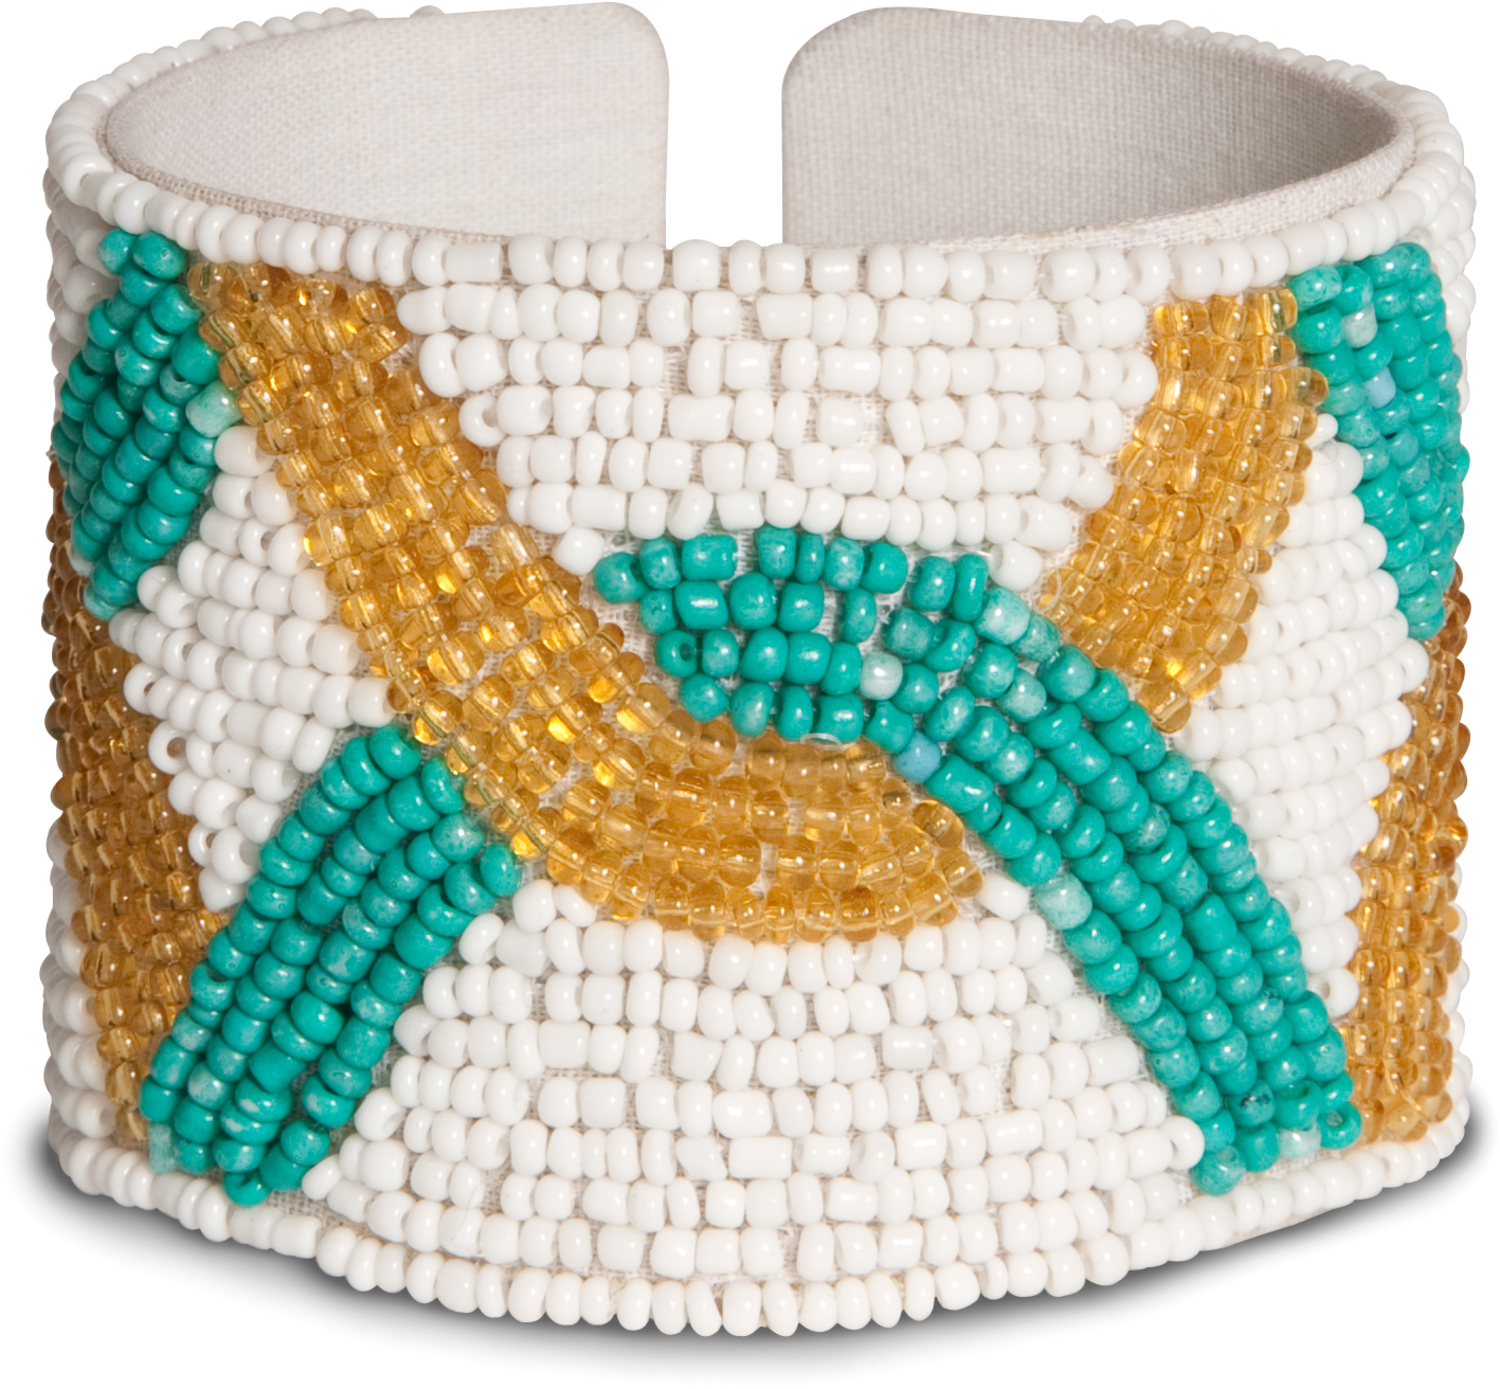 "Mosaic by Tribal Chic Collection - Mosaic - 2"" Beaded Cuff Bracelet"